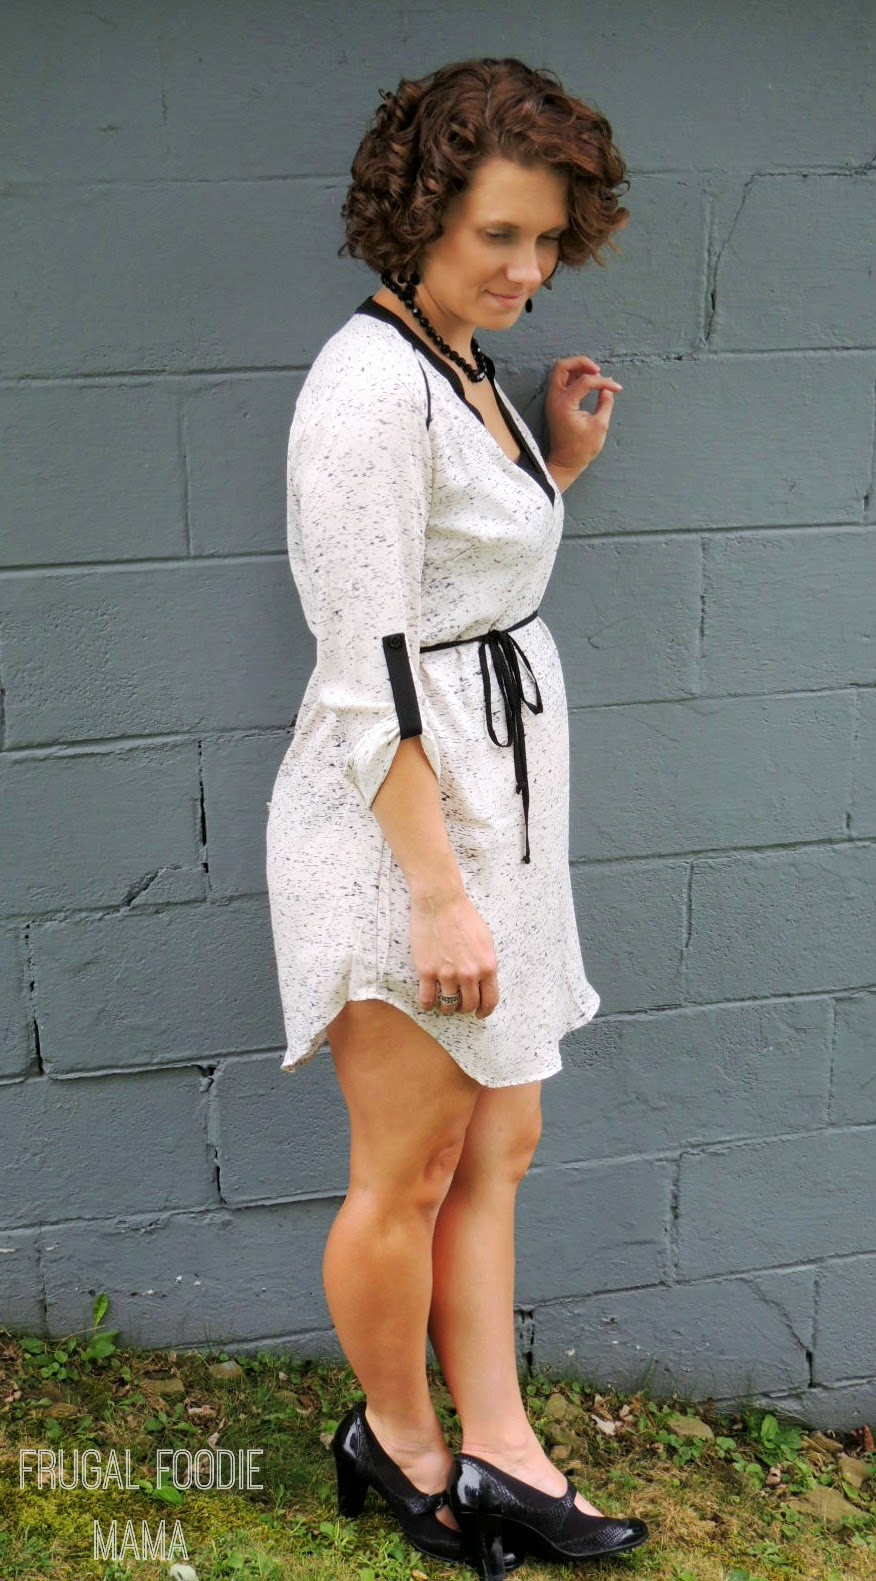 Budget Friendly, NYC Chic Fall Fashion from Necessary Clothing via thefrugalfoodiemama.com - Splatter Shirt Dress